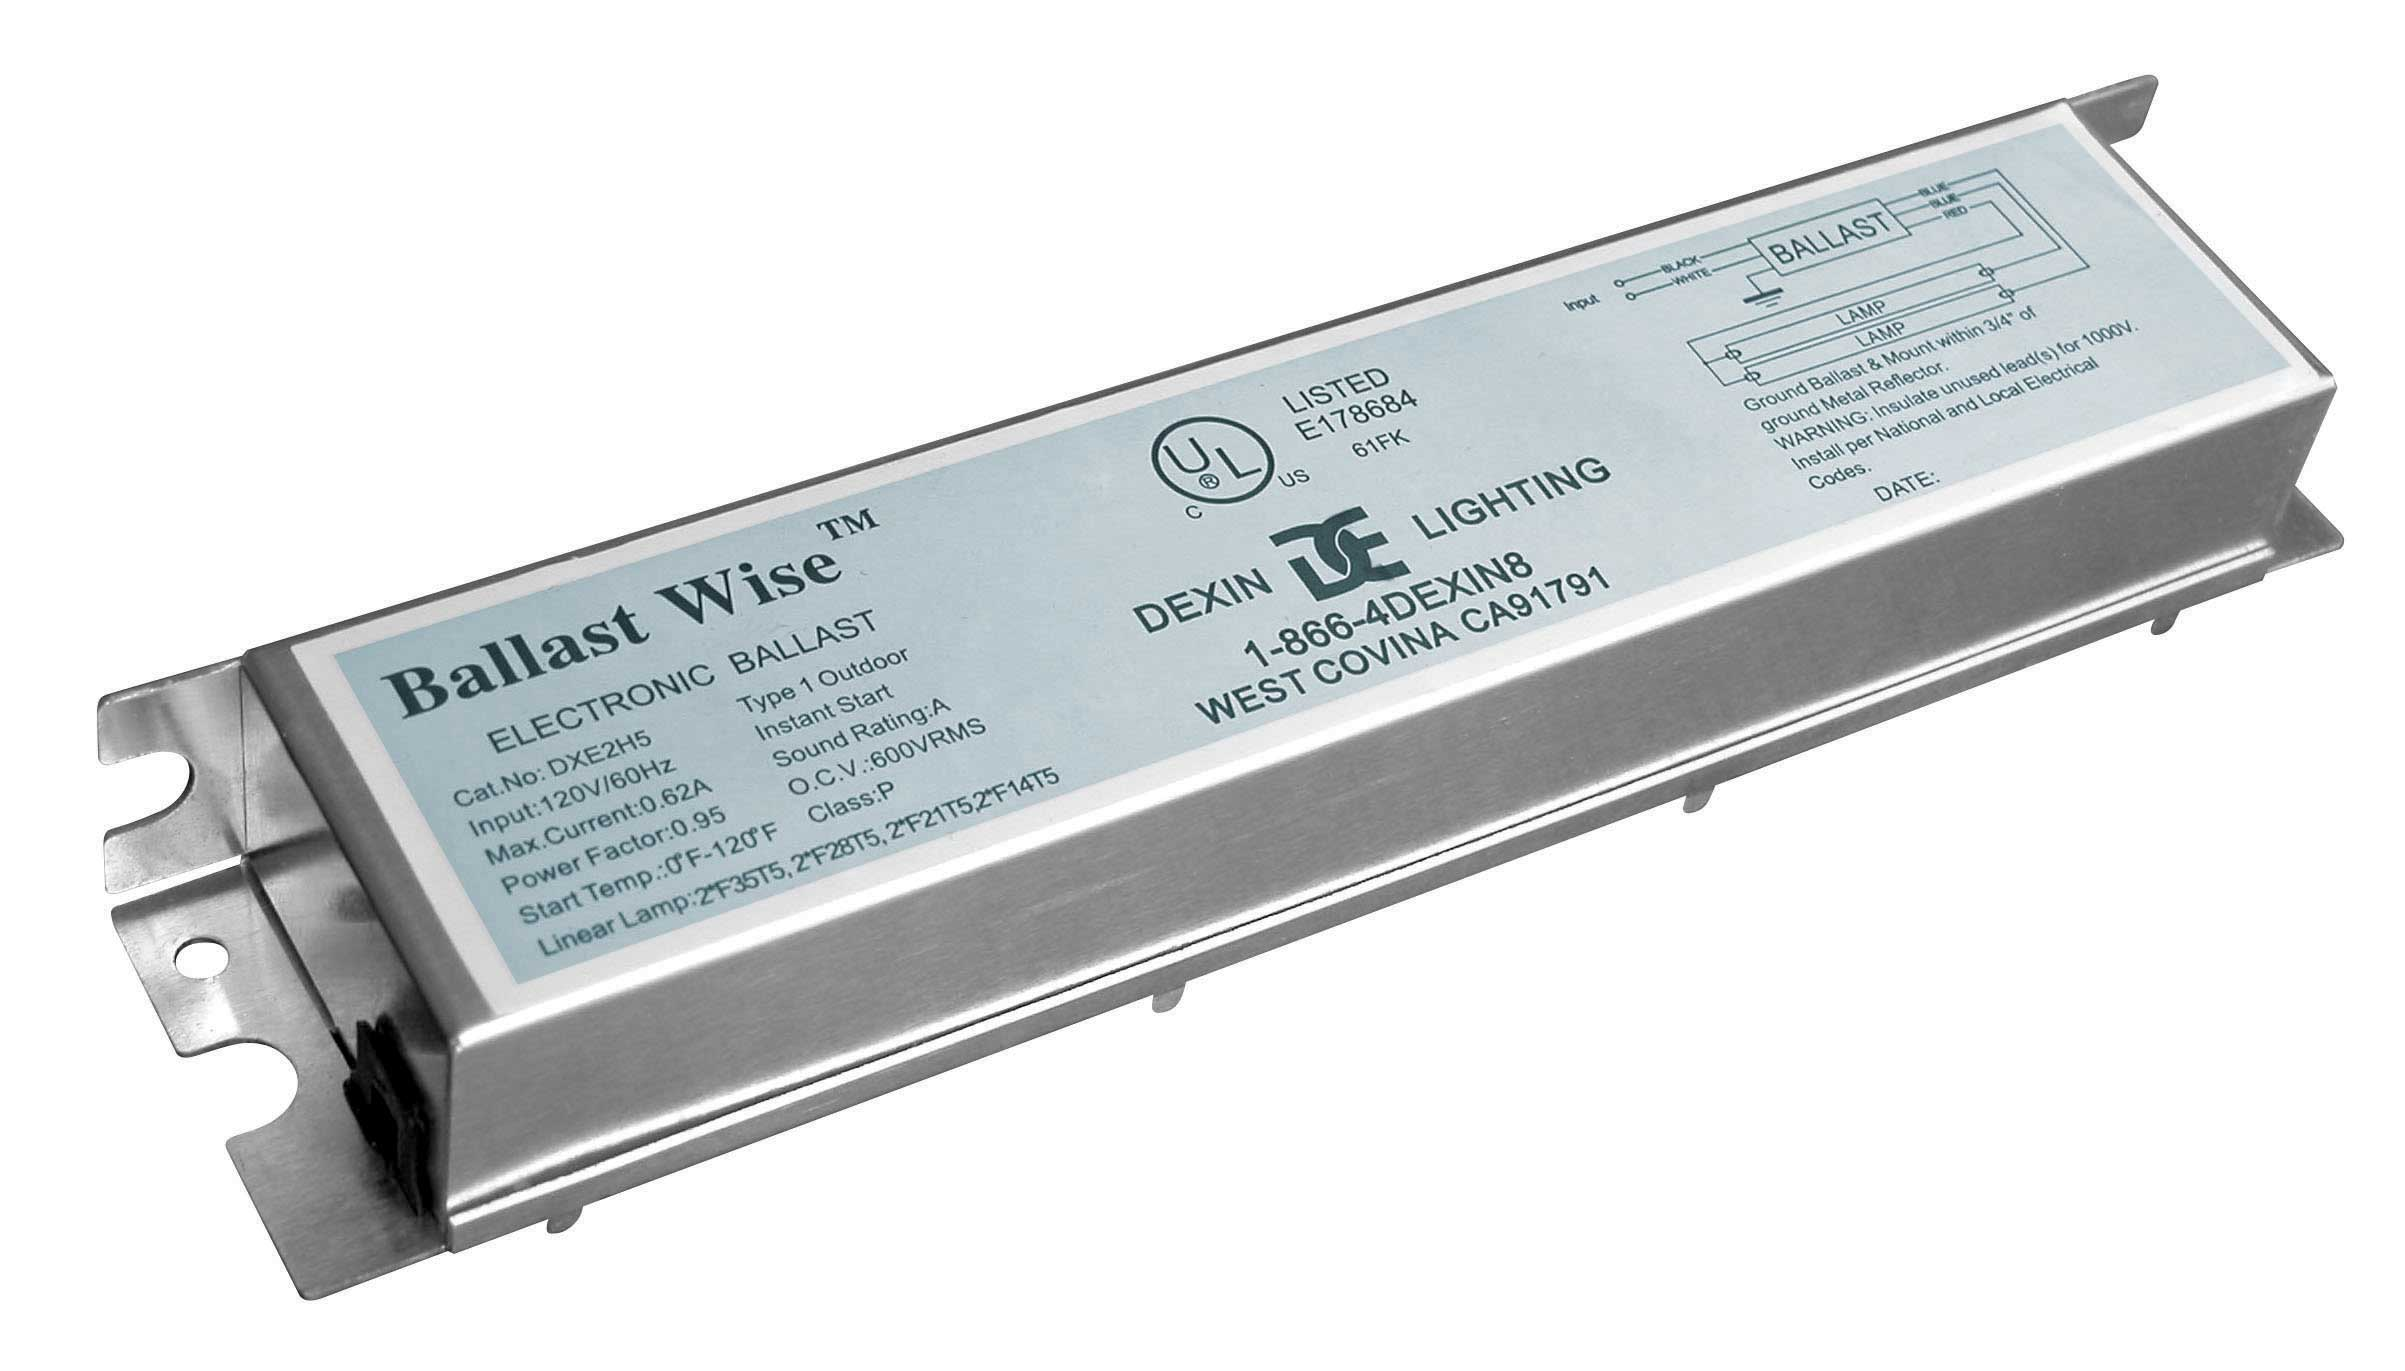 506332 2 T12 Ballasts 1 T8 Ballast Running 4 Fluorescent Bulbs as well Energy Saving Car Park Lighting Motion 759311064 likewise T8 8foot Led Tube High Lumen R17d additionally Item as well Item. on t8 or t12 ballast